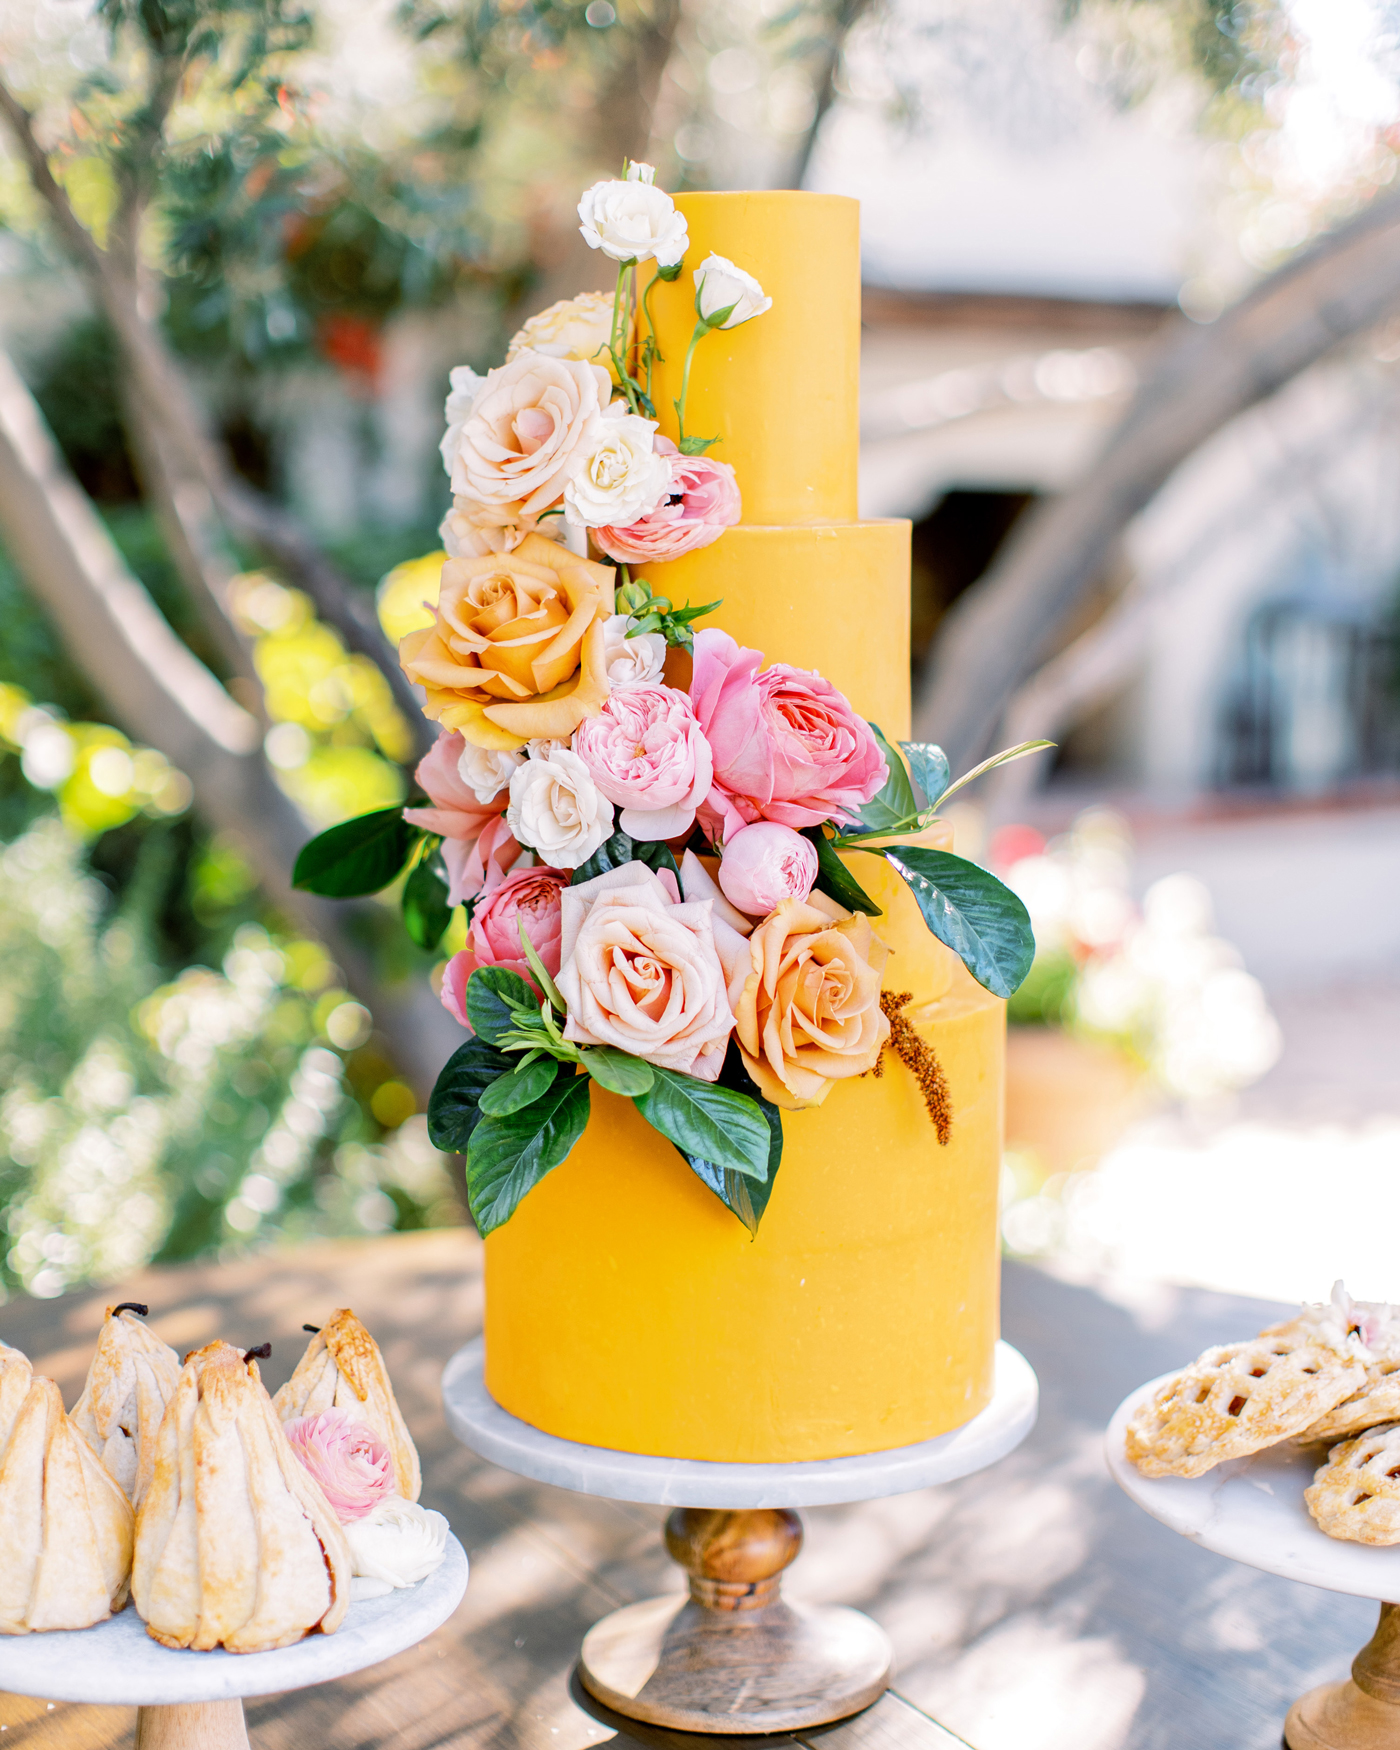 four tiered deep golden yellow frosted wedding cake with floral display